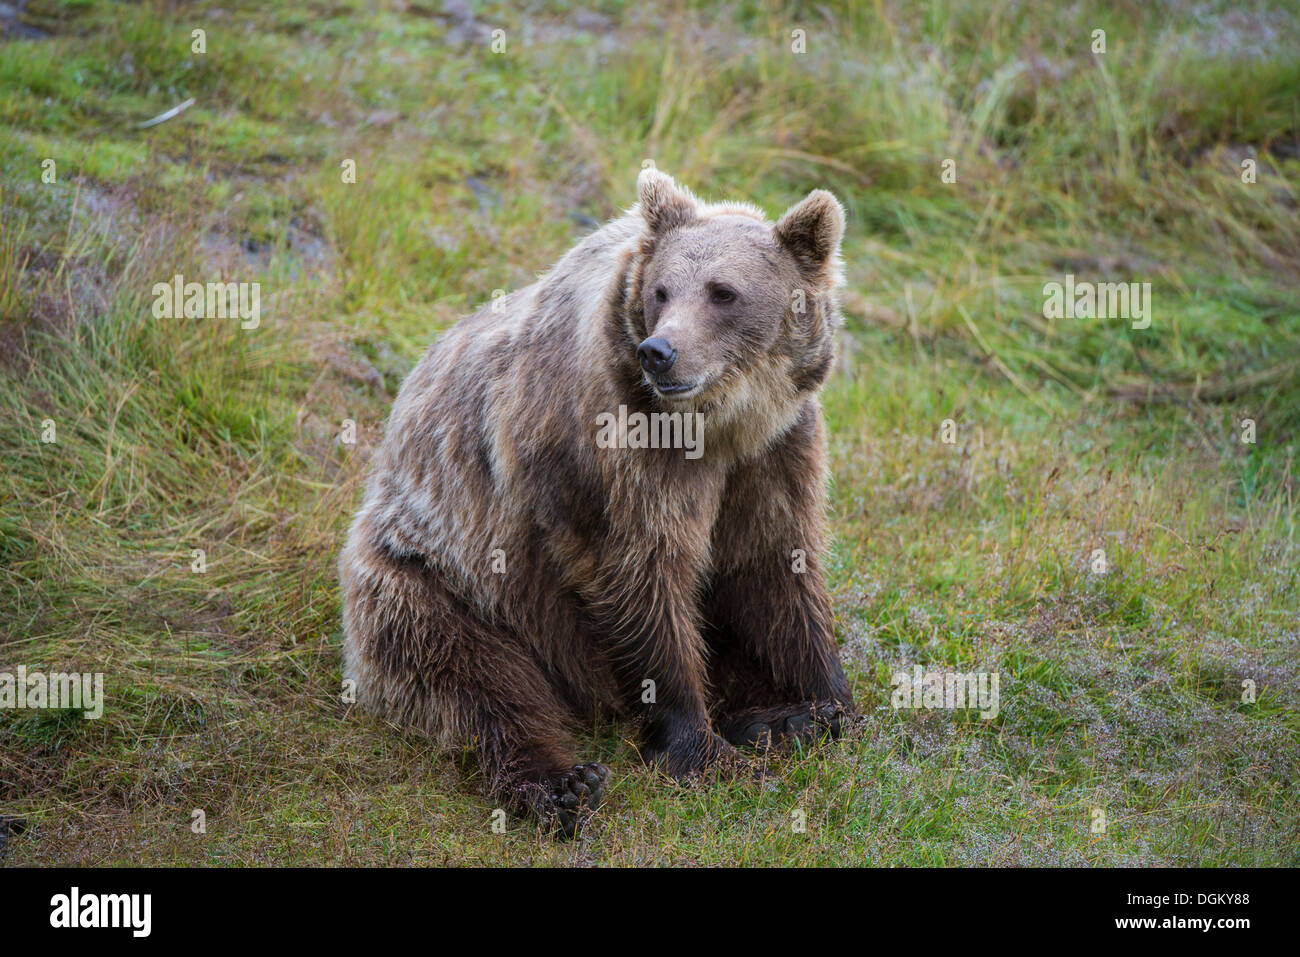 Brown Bear (Ursus arctos) sitting on grass, Namsskogan Familienpark, Trones, Nord-Trøndelag, Trøndelag, Norway - Stock Image